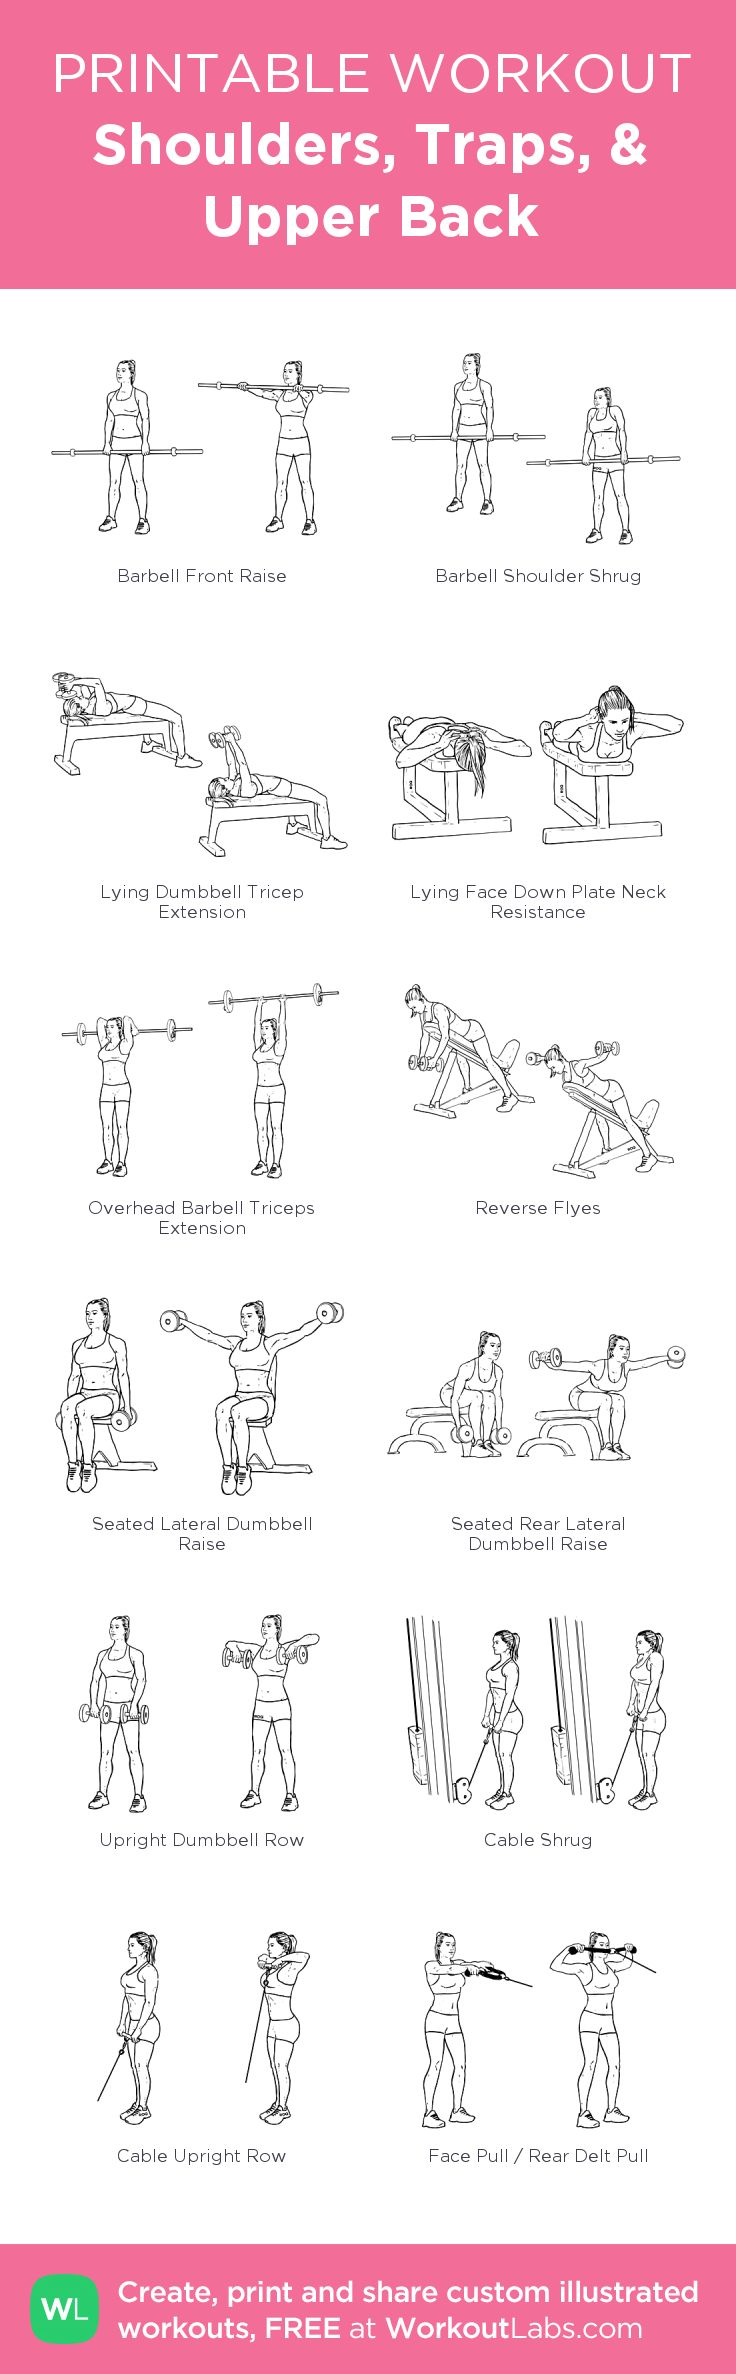 Shoulders, Traps, & Upper Back: my visual workout created at WorkoutLabs.com • Click through to customize and download as a FREE PDF! #customworkout